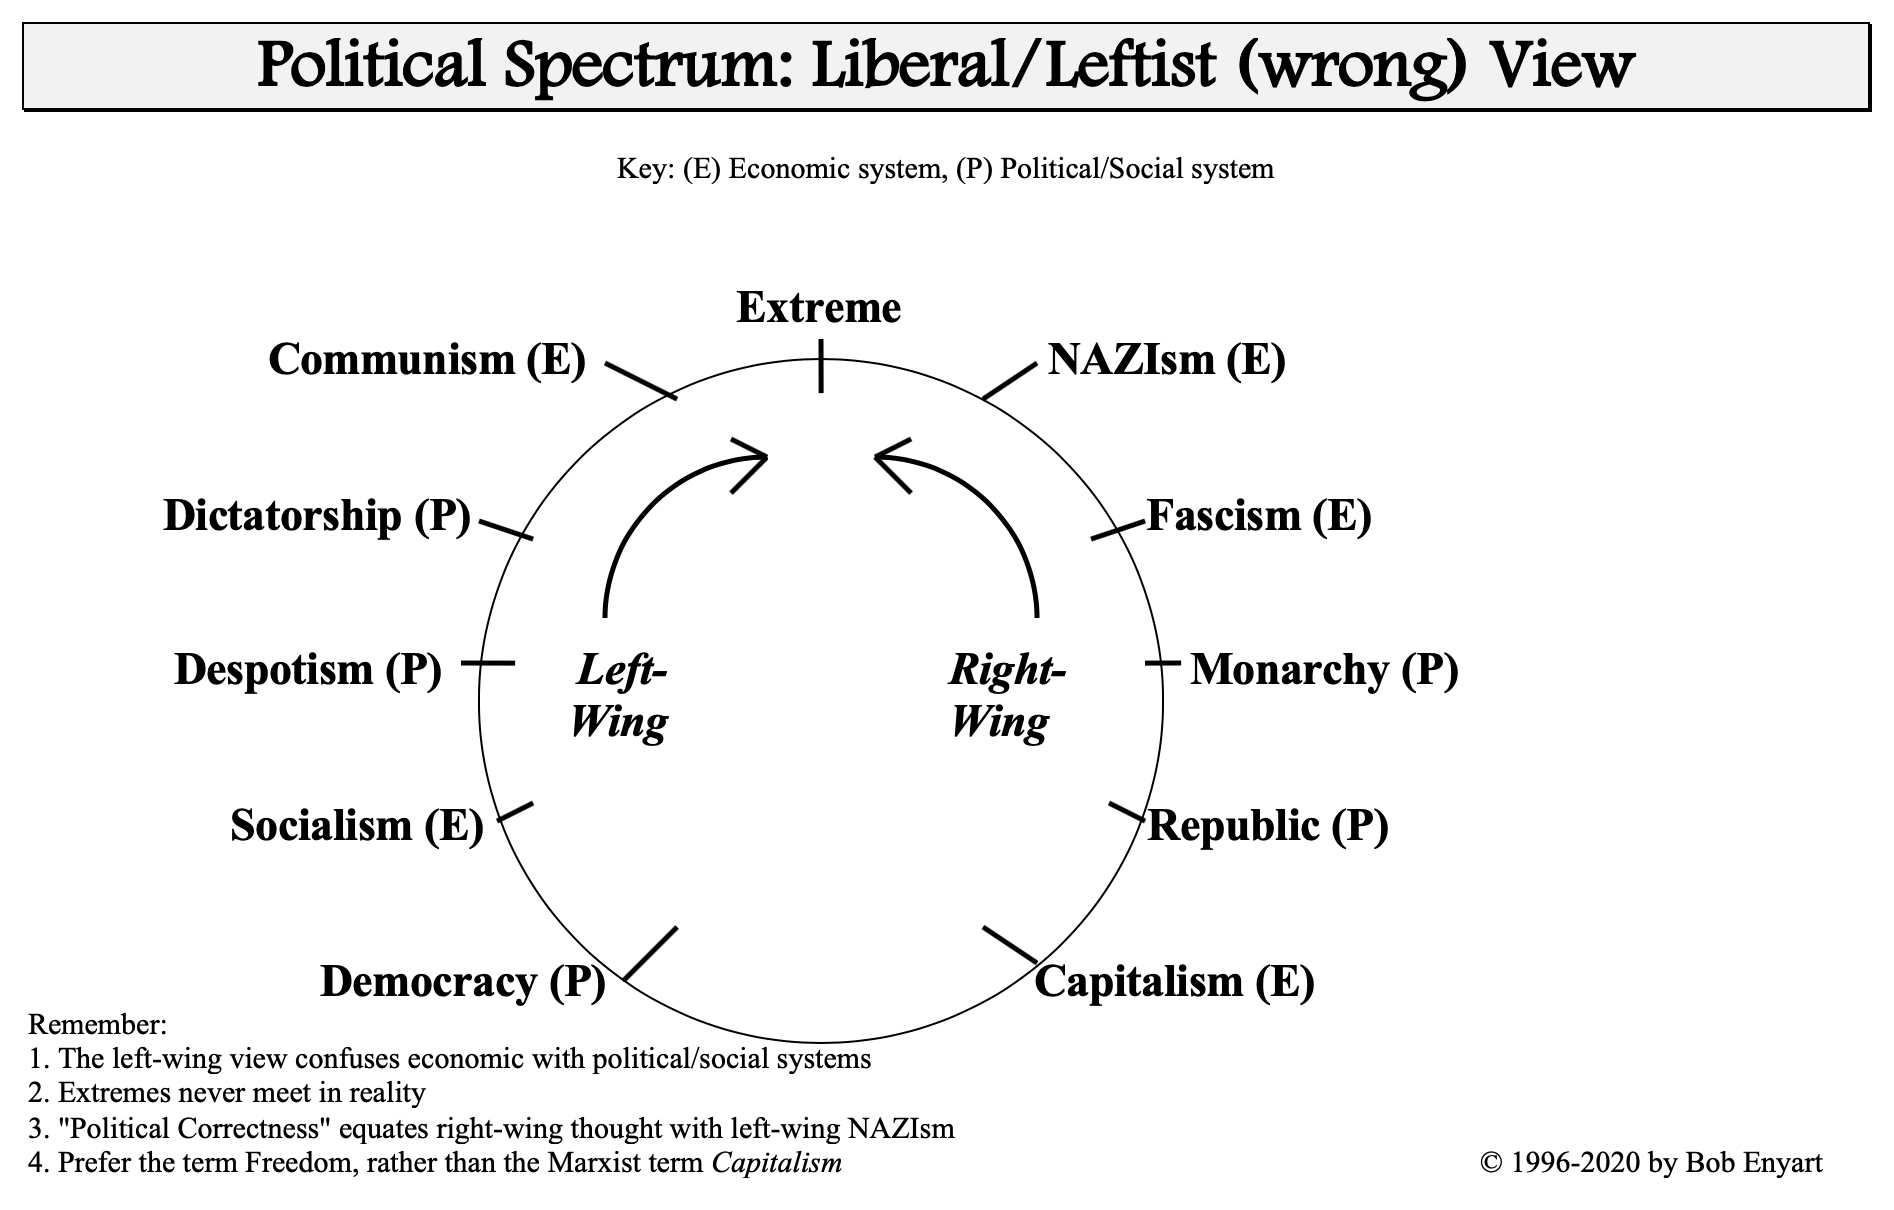 Political Spectrum: Leftwing (liberal) i.e., wrong, in a circle